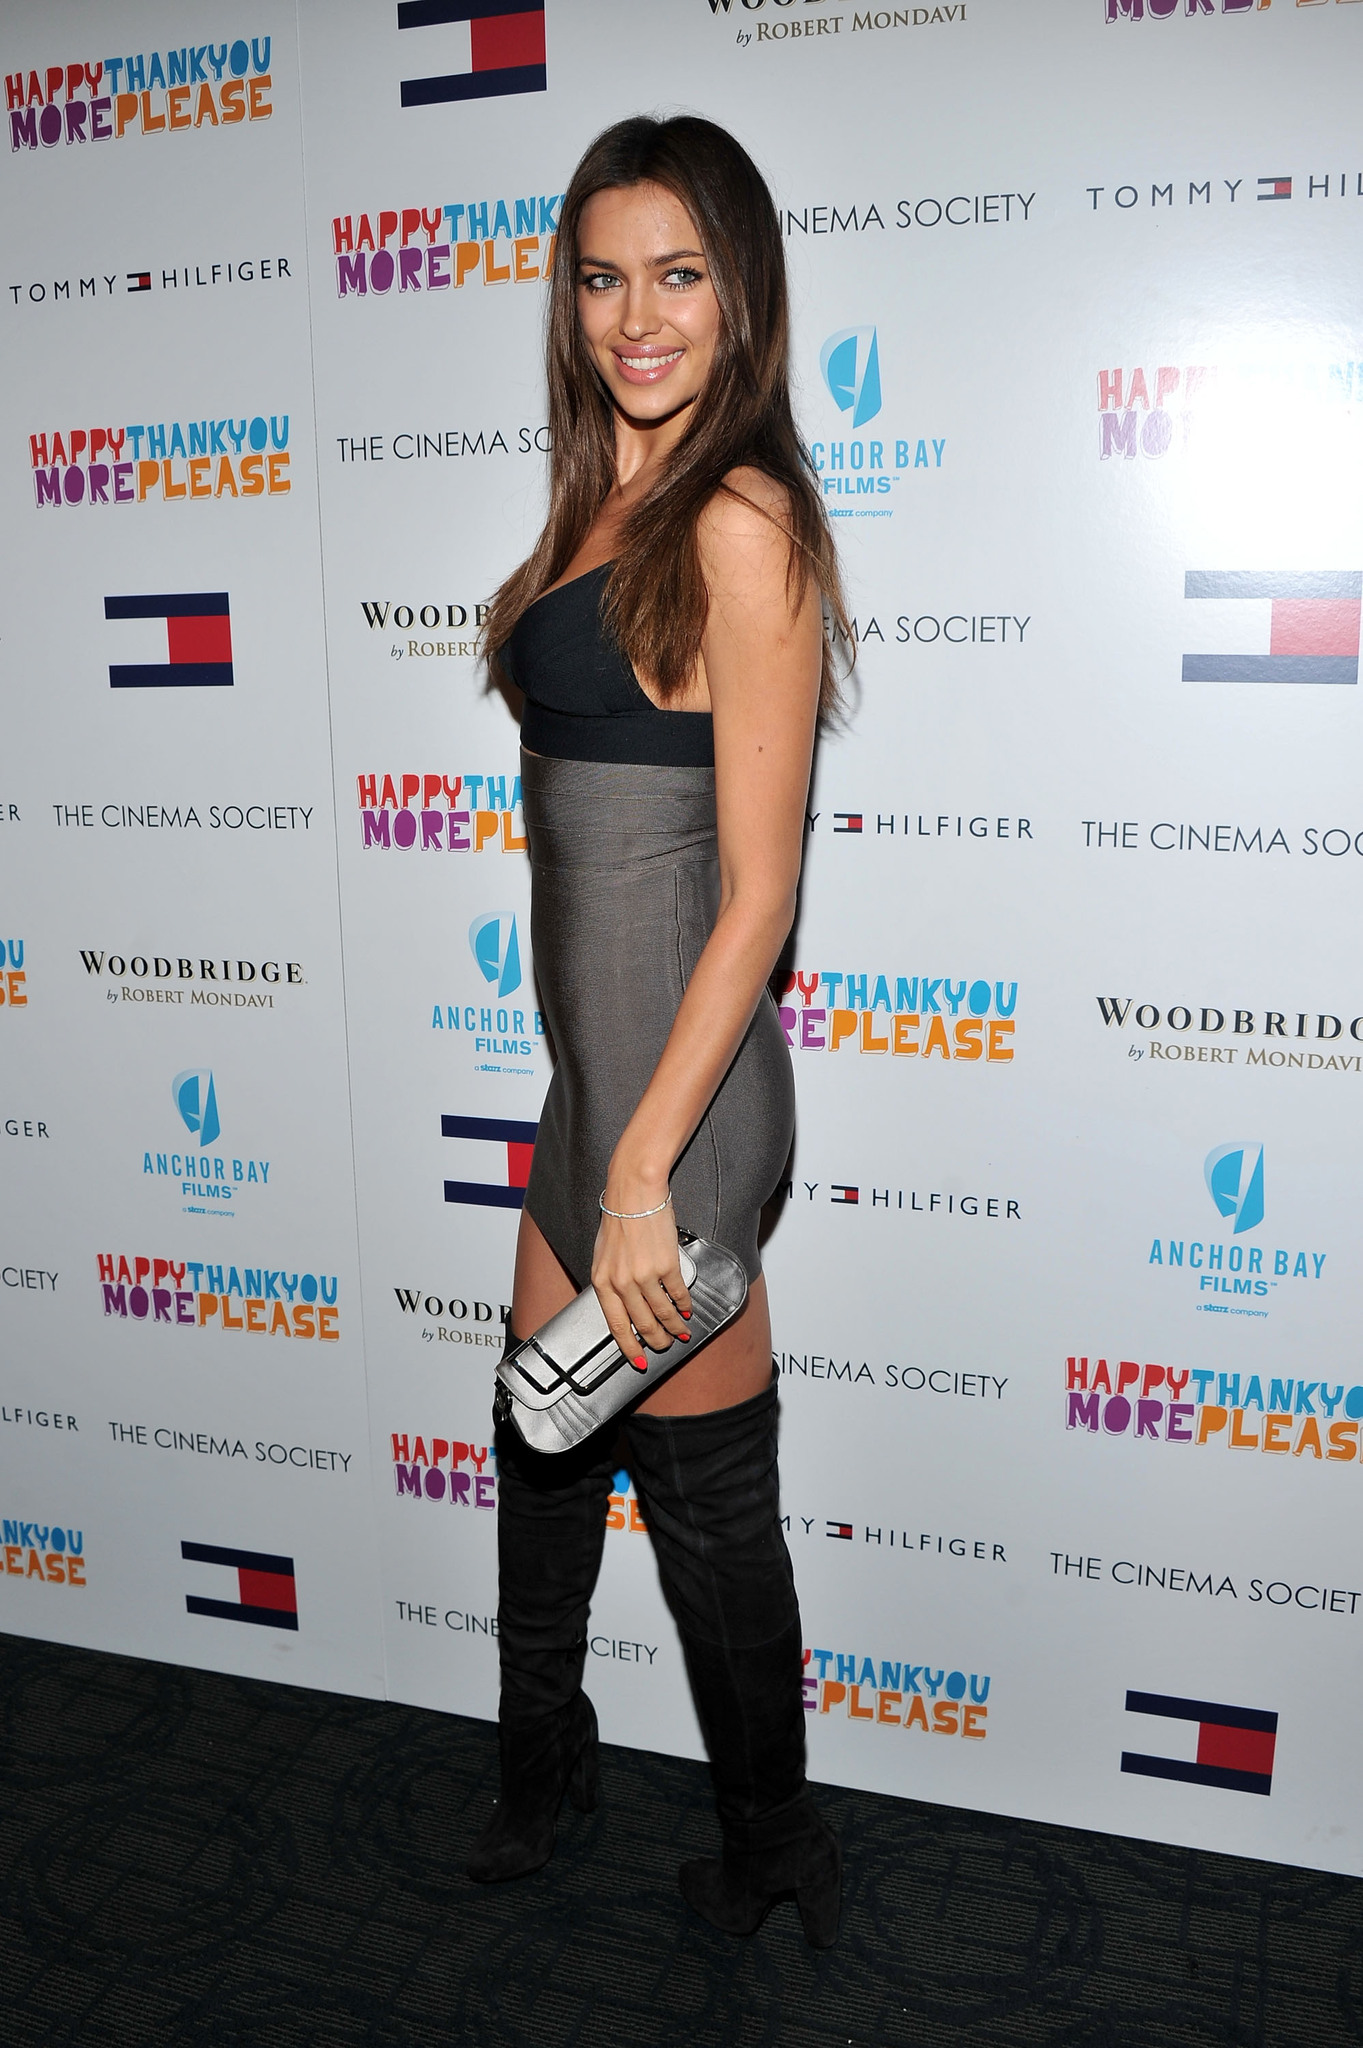 Irina Shayk at an event for Happythankyoumoreplease (2010)